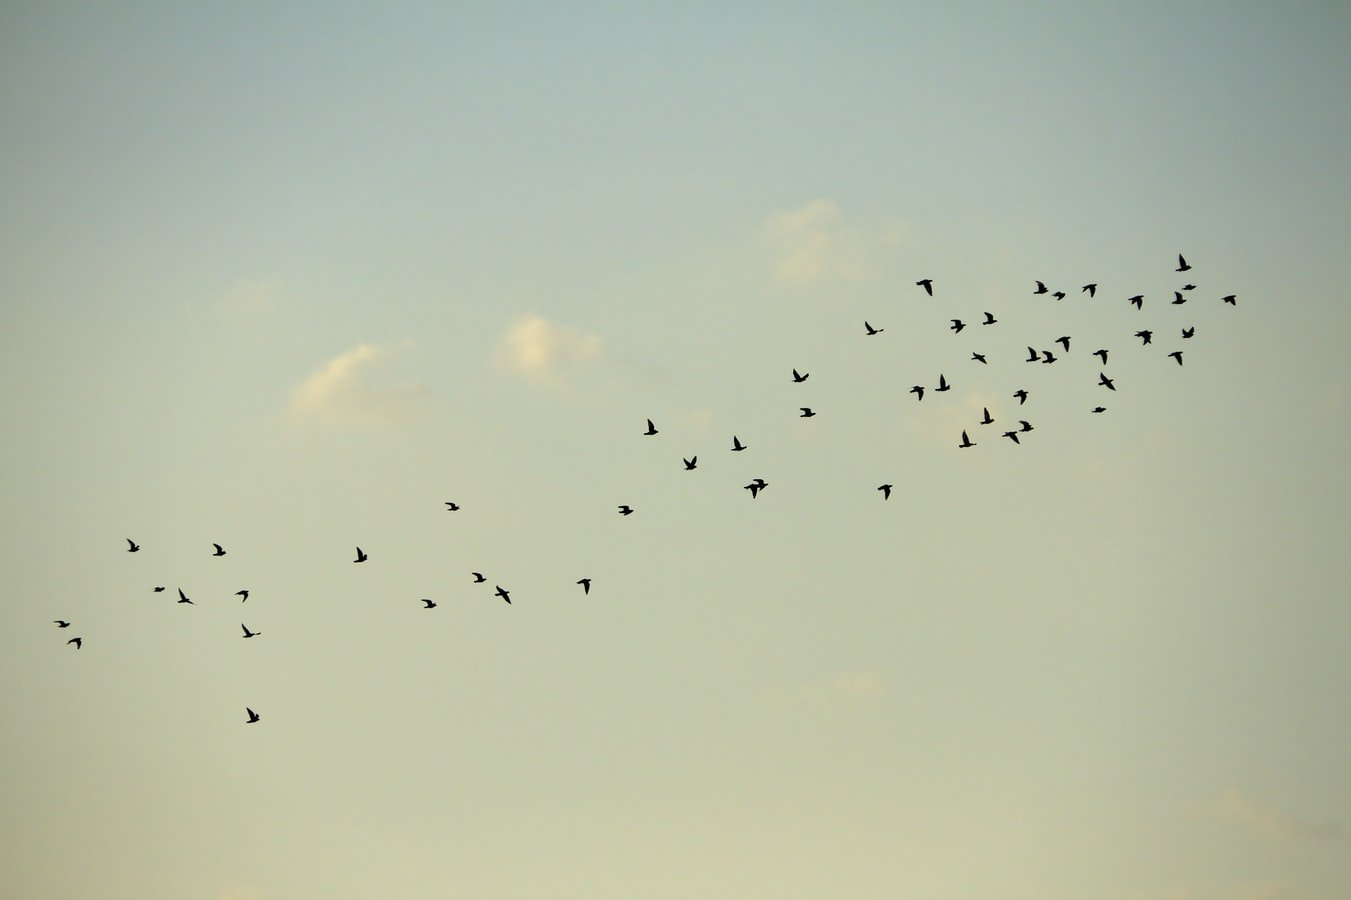 What does it mean when a lot of birds are chirping